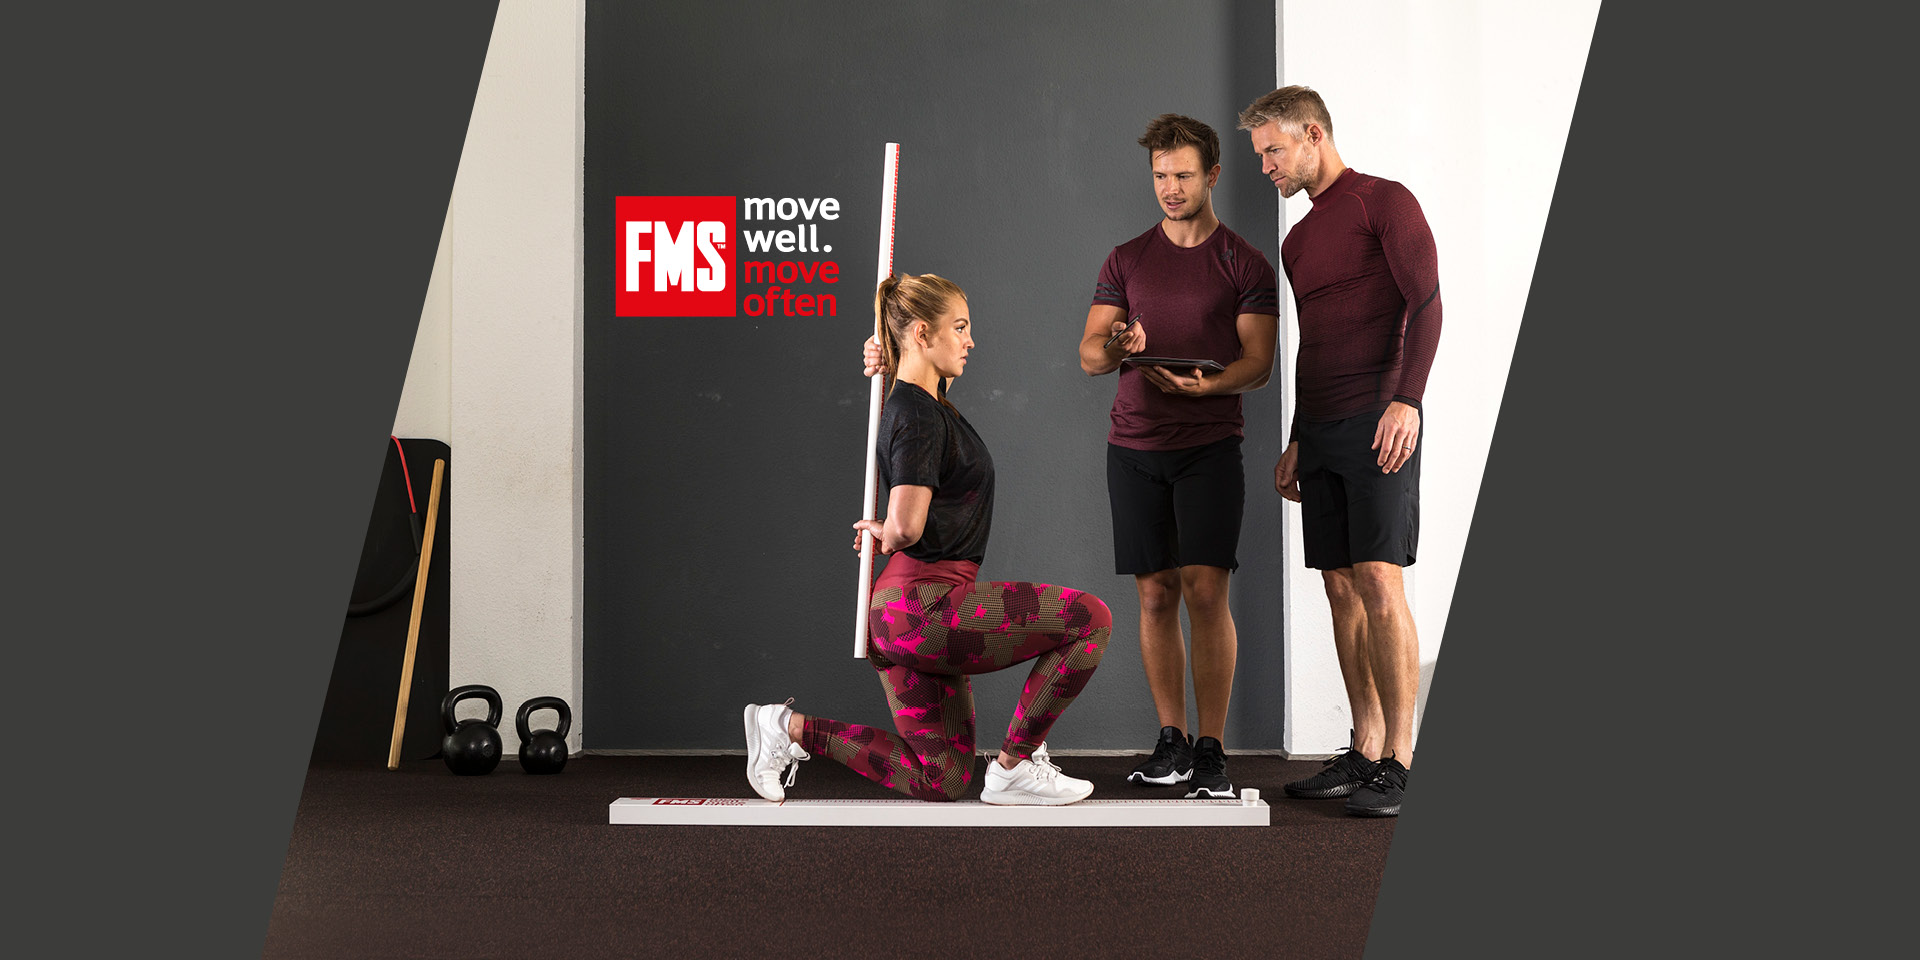 FMS -Functional Movement Systems